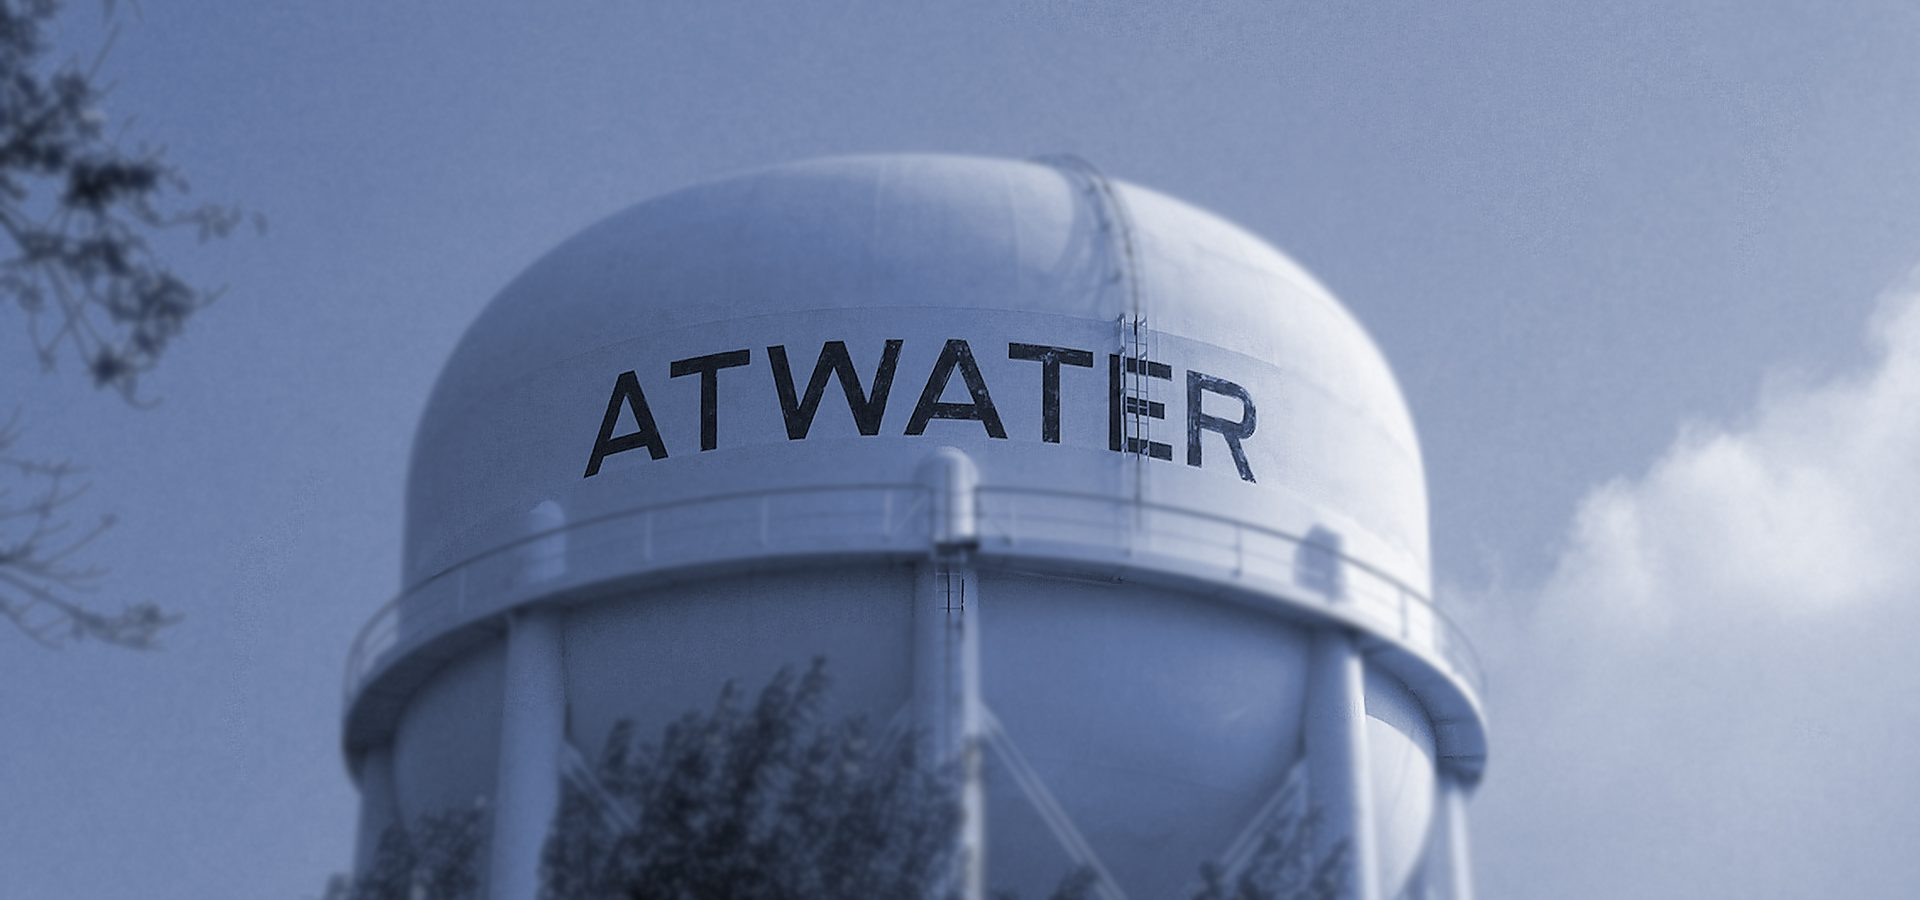 Atwater Water Tower